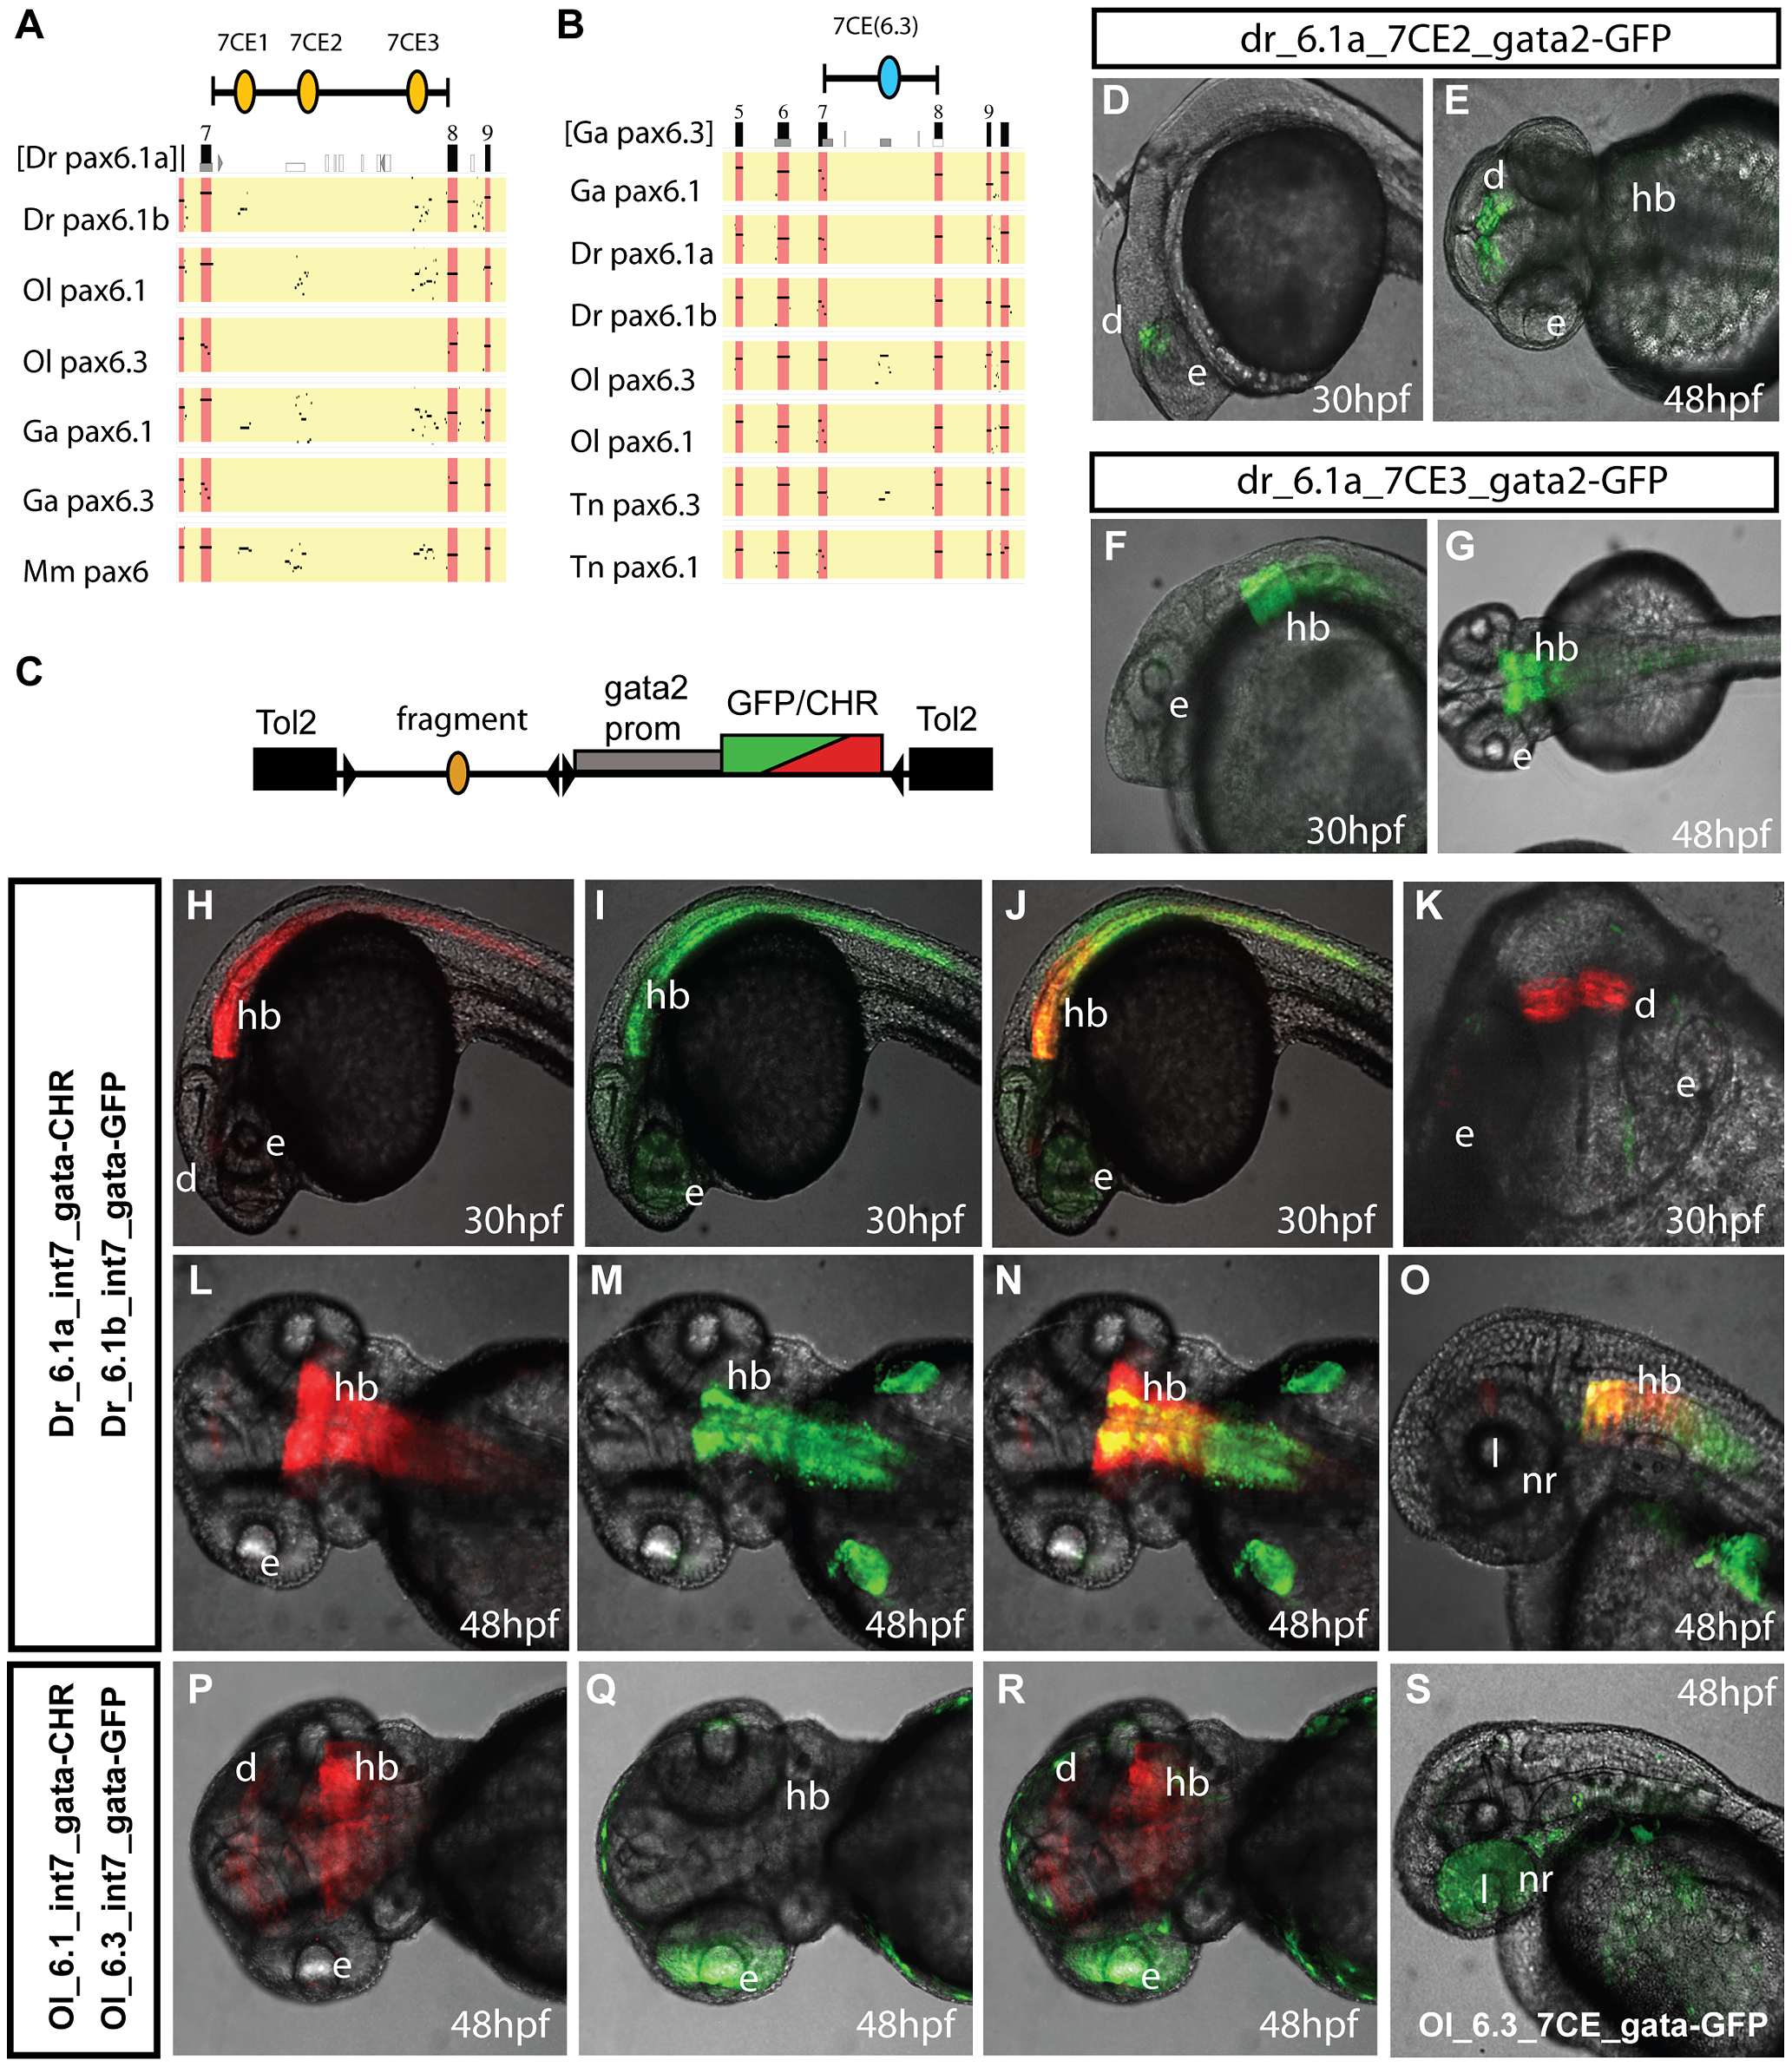 Comparison of functional activity driven by zebrafish and medaka intron 7 sequences.